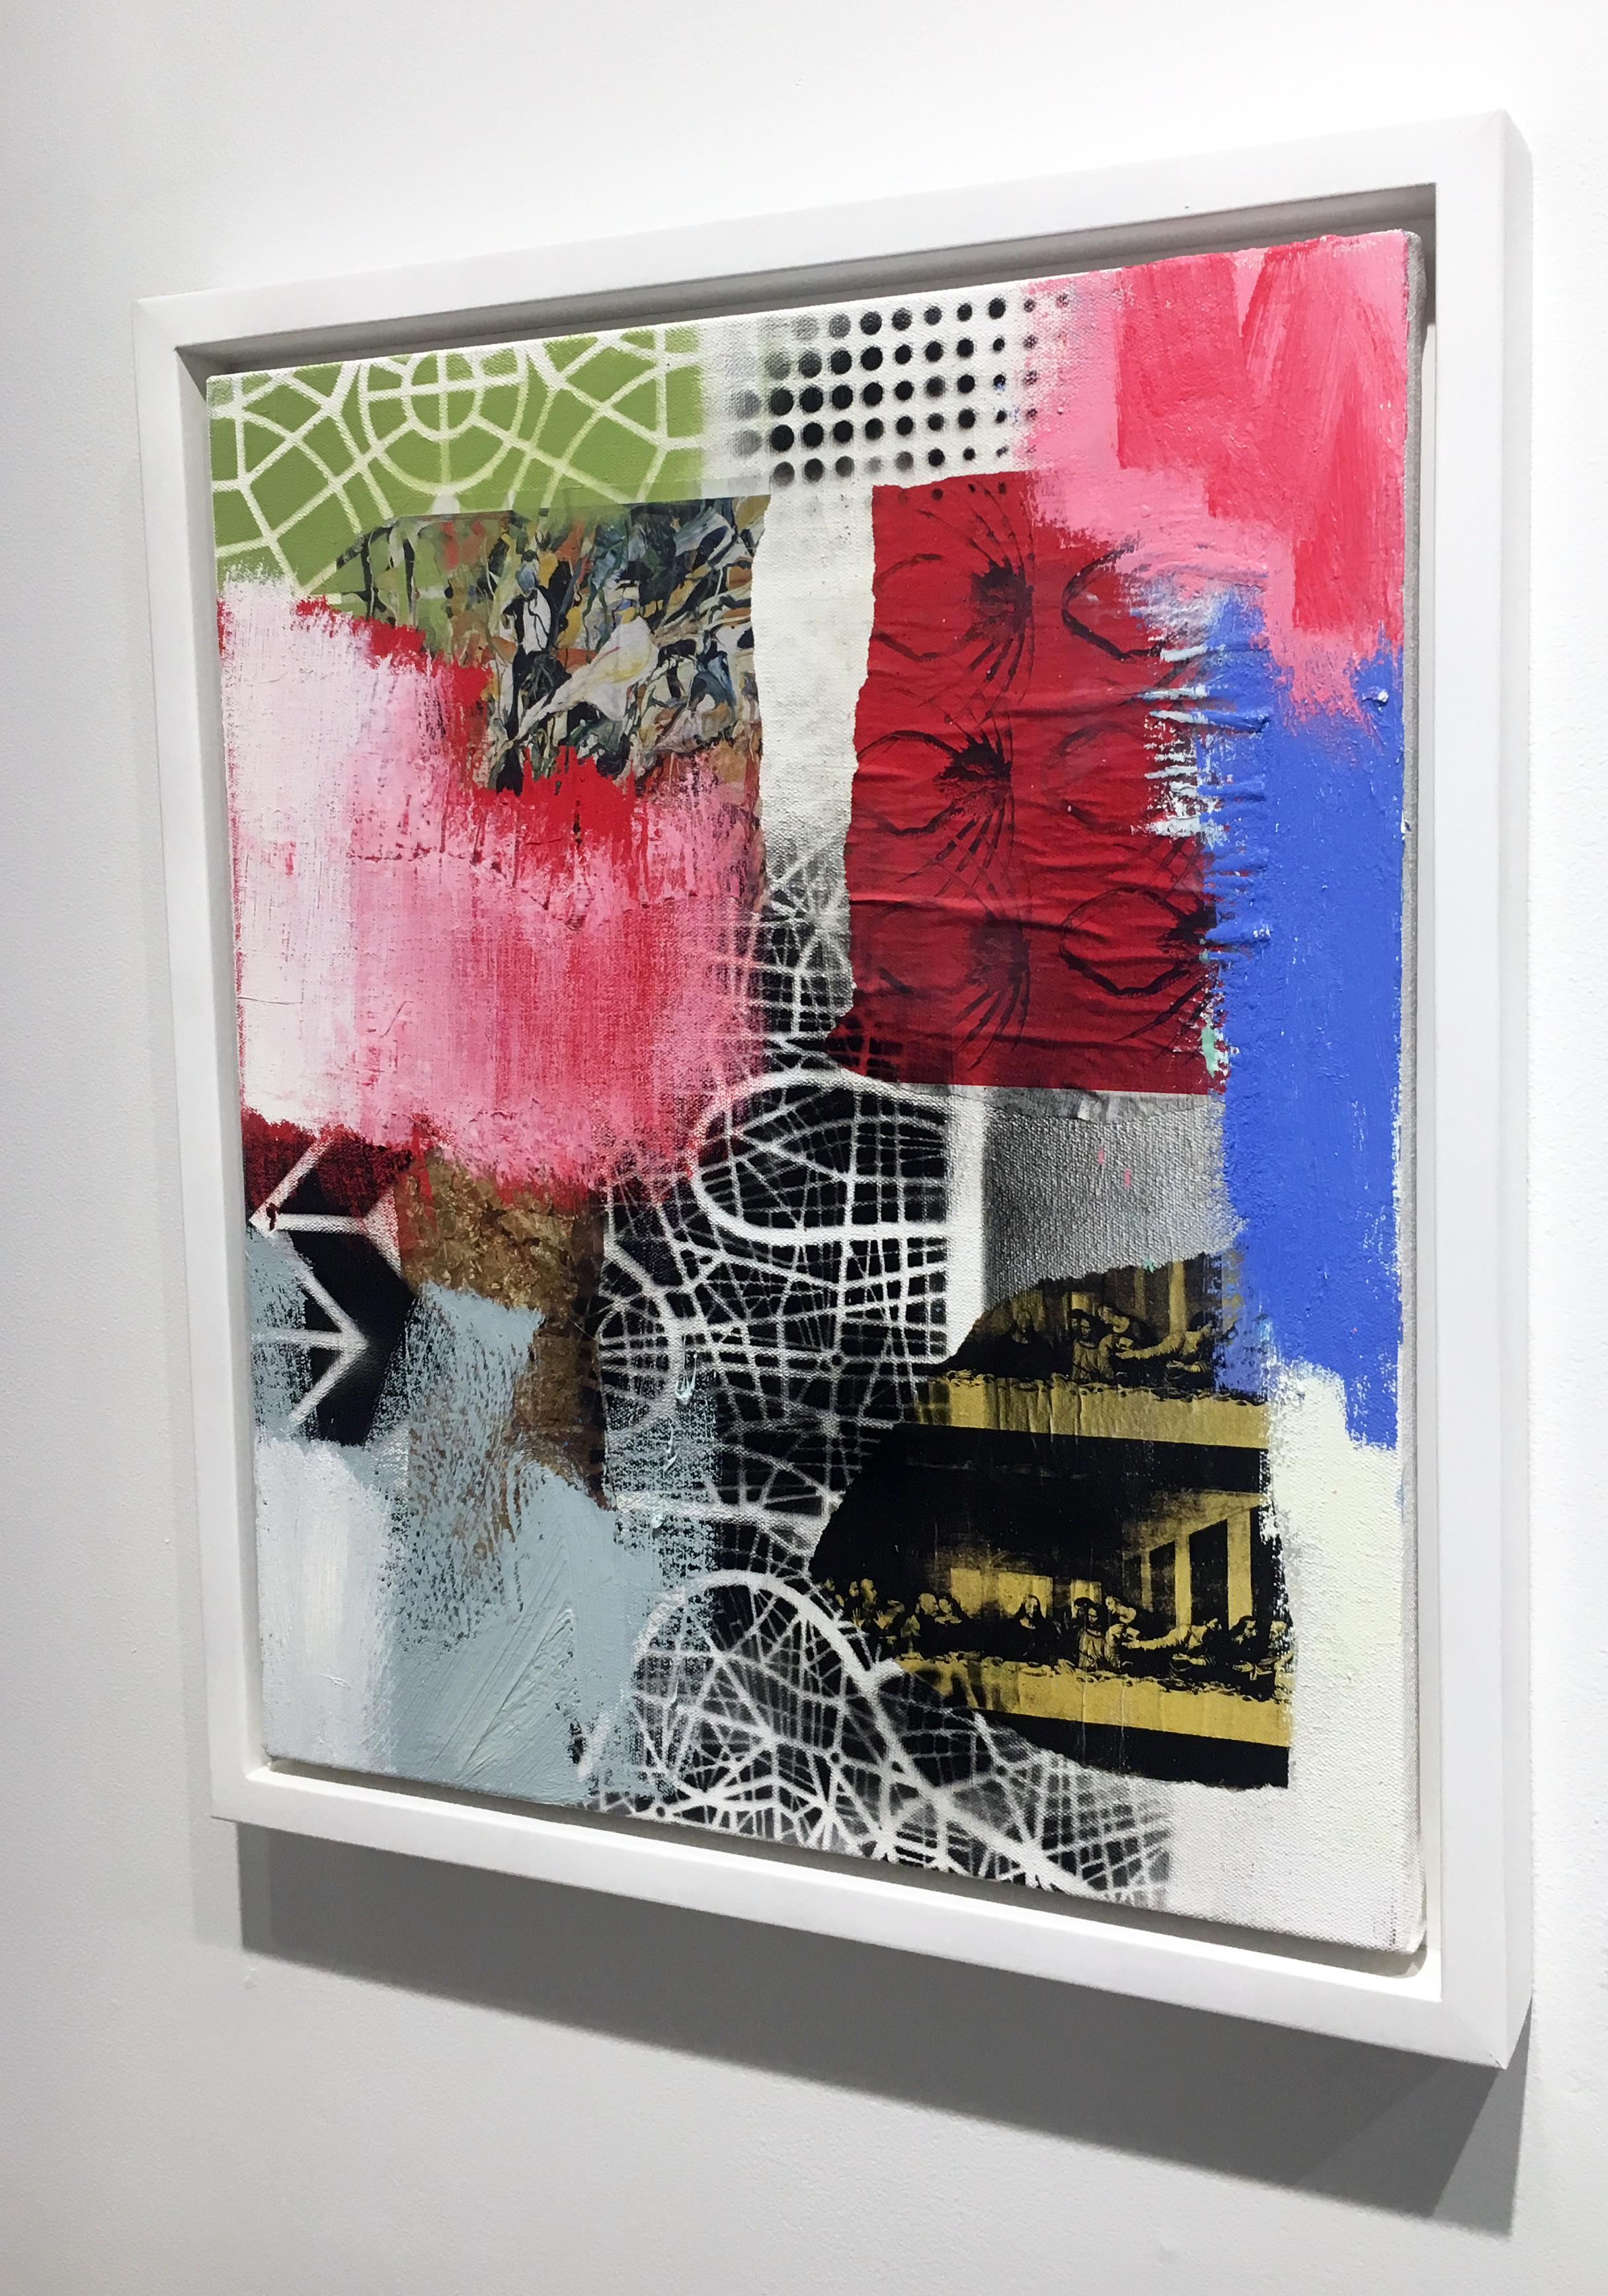 Contemporary Abstract Painting Contemporary Abstract Oil Painting With Collage On Canvas Framed Mixed Media